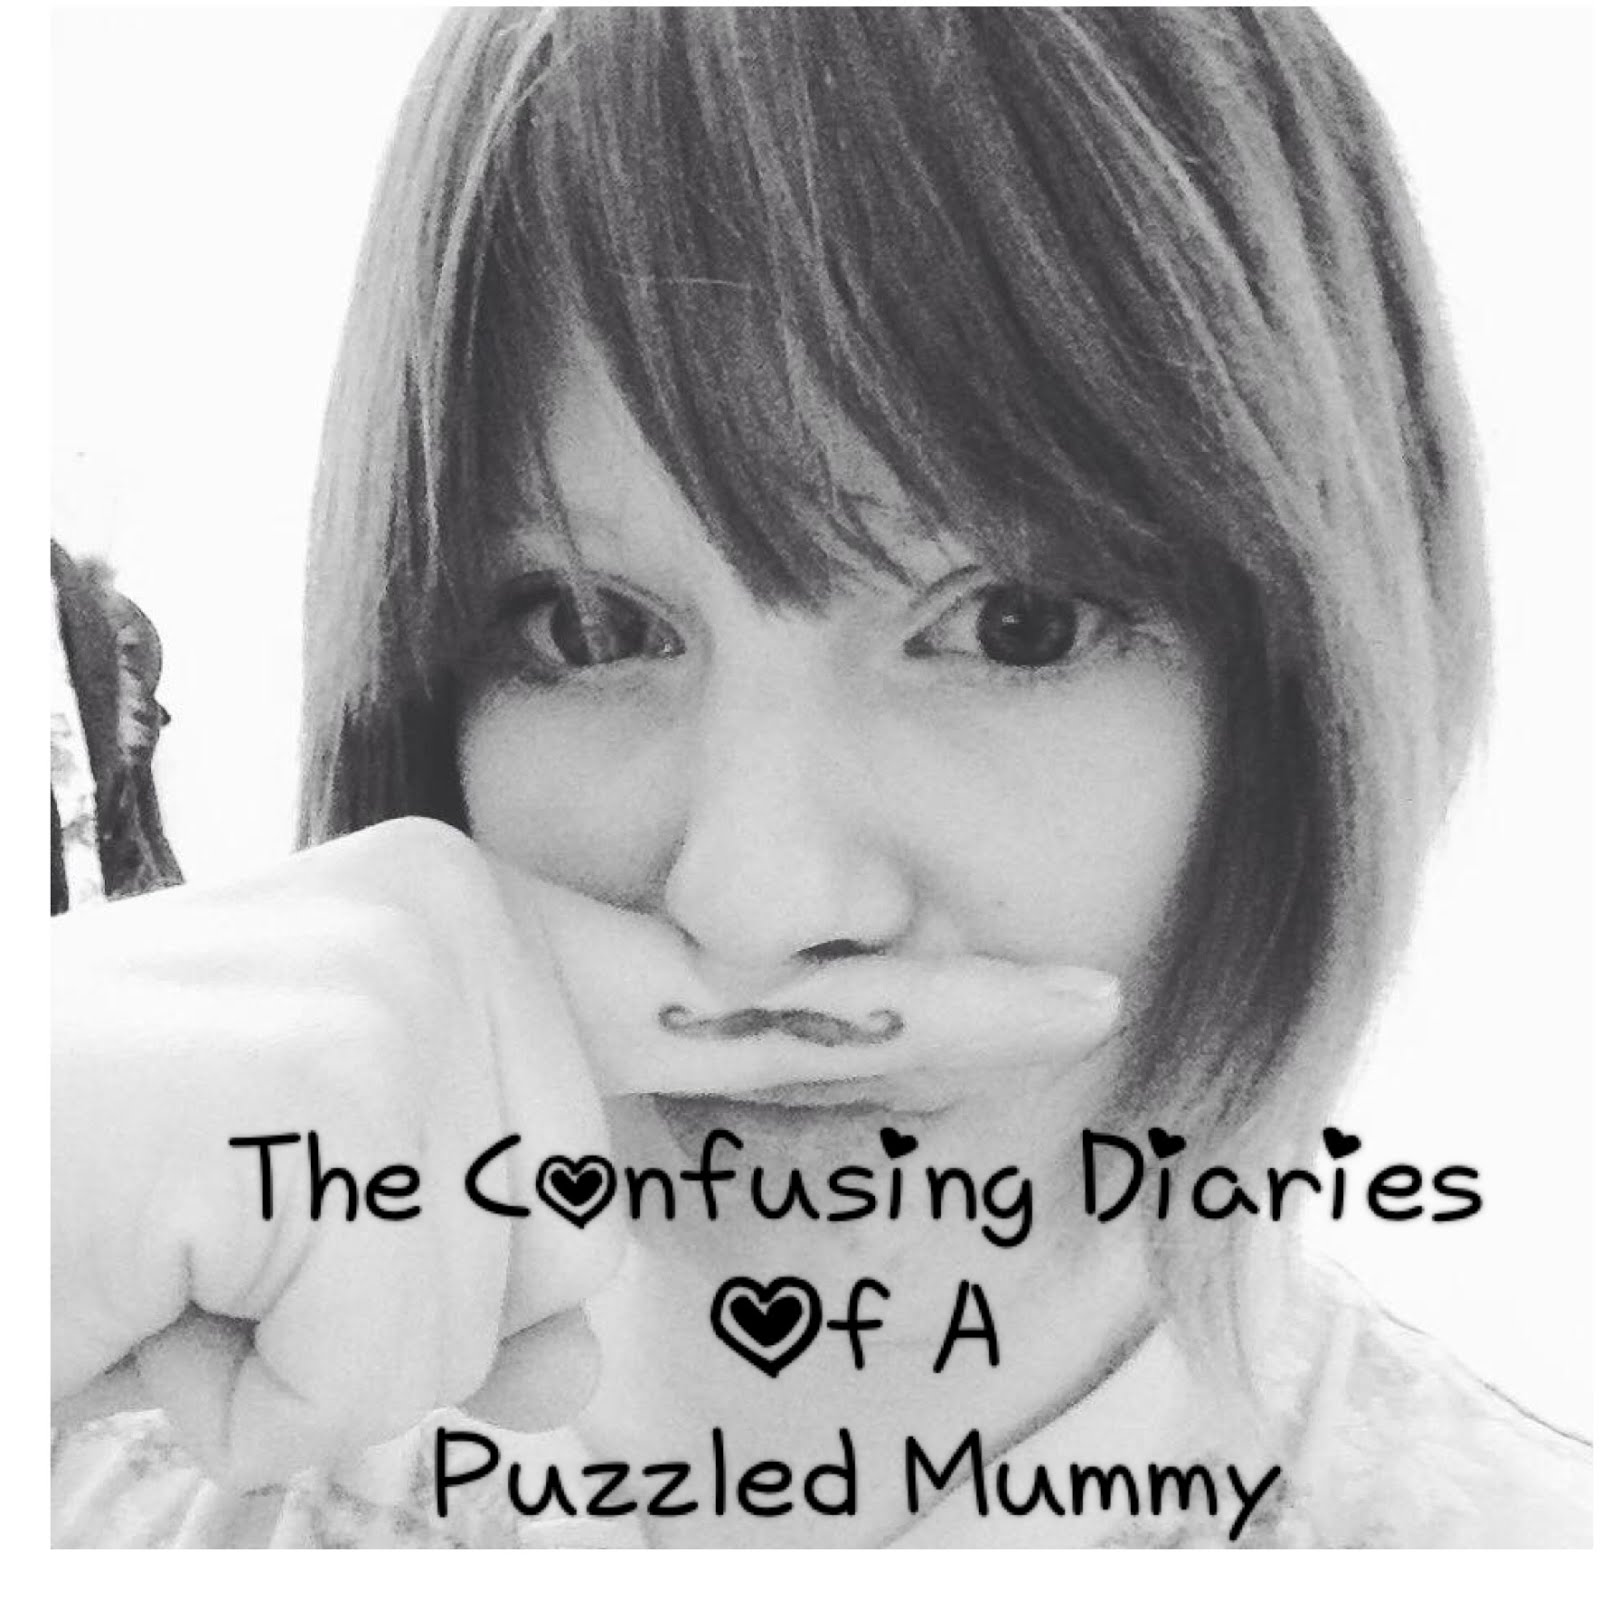 The Confusing Diaries Of A Puzzled Mummy